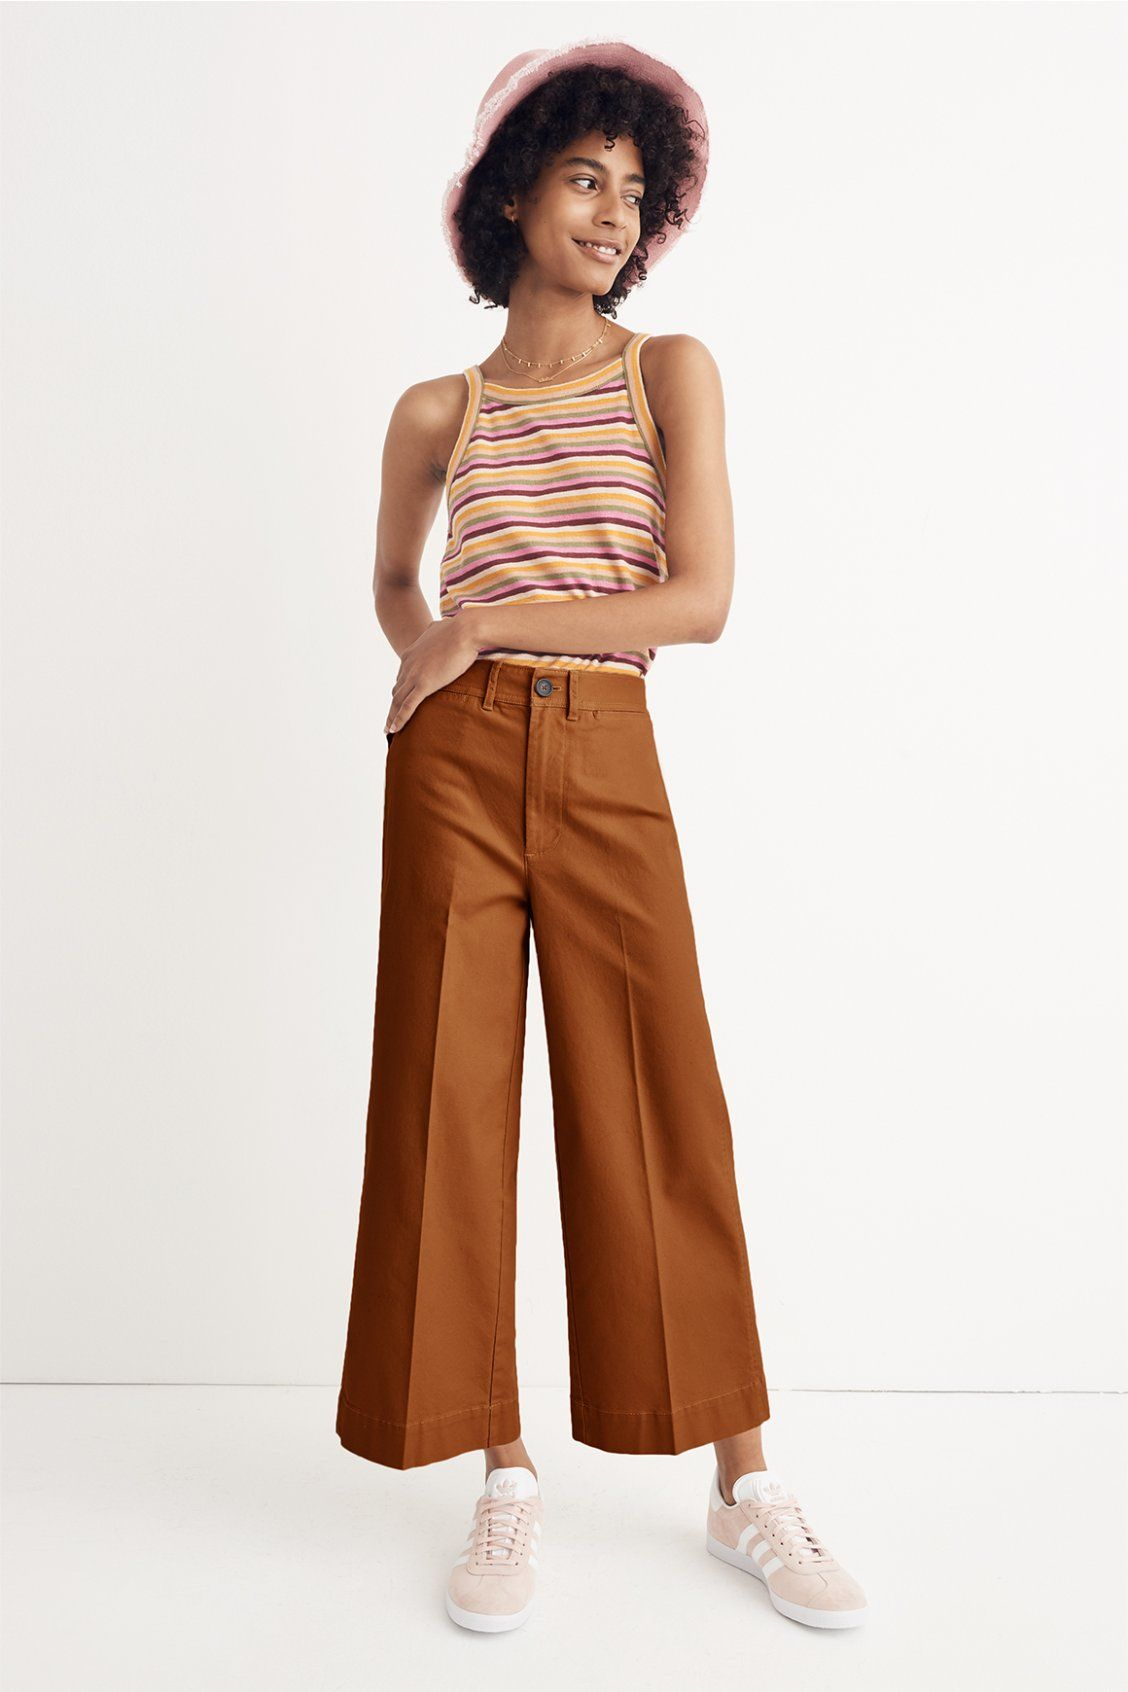 8a4a417d7c4 madewell striped tank top worn with the emmett wide-leg crop pants + canvas  bucket hat. call 866 544 1937 or email shopfirst madewell.com to pre-order.